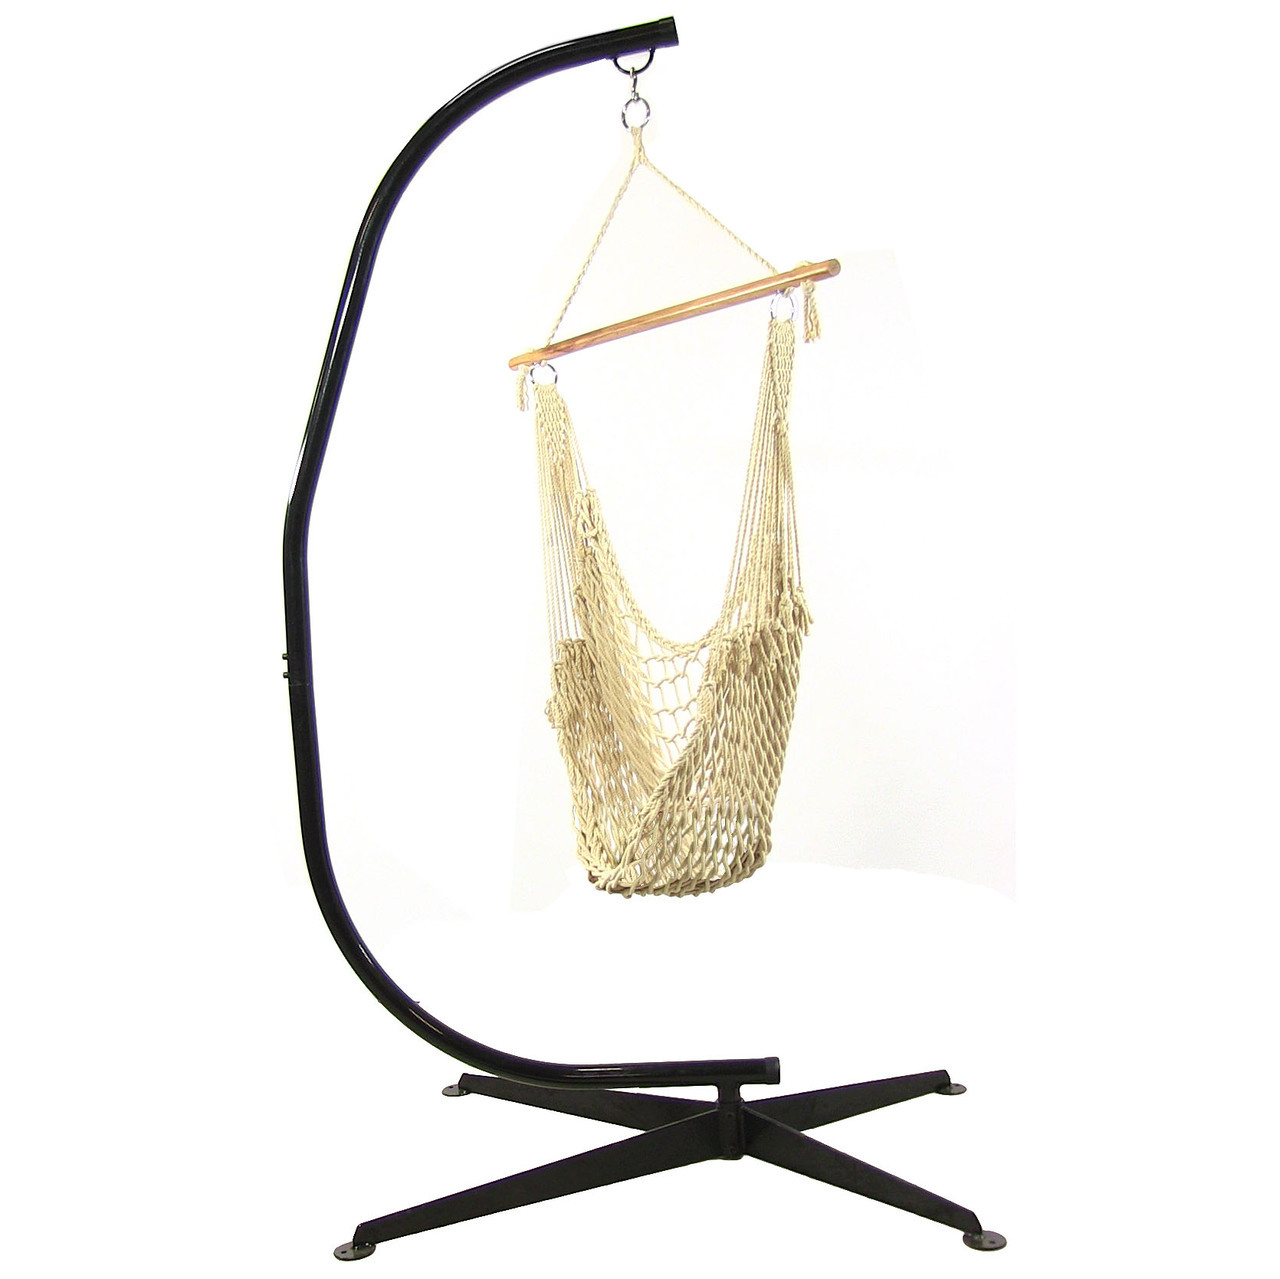 Rope Hanging Hammock Chair Swing Stand Wide Seat Photo